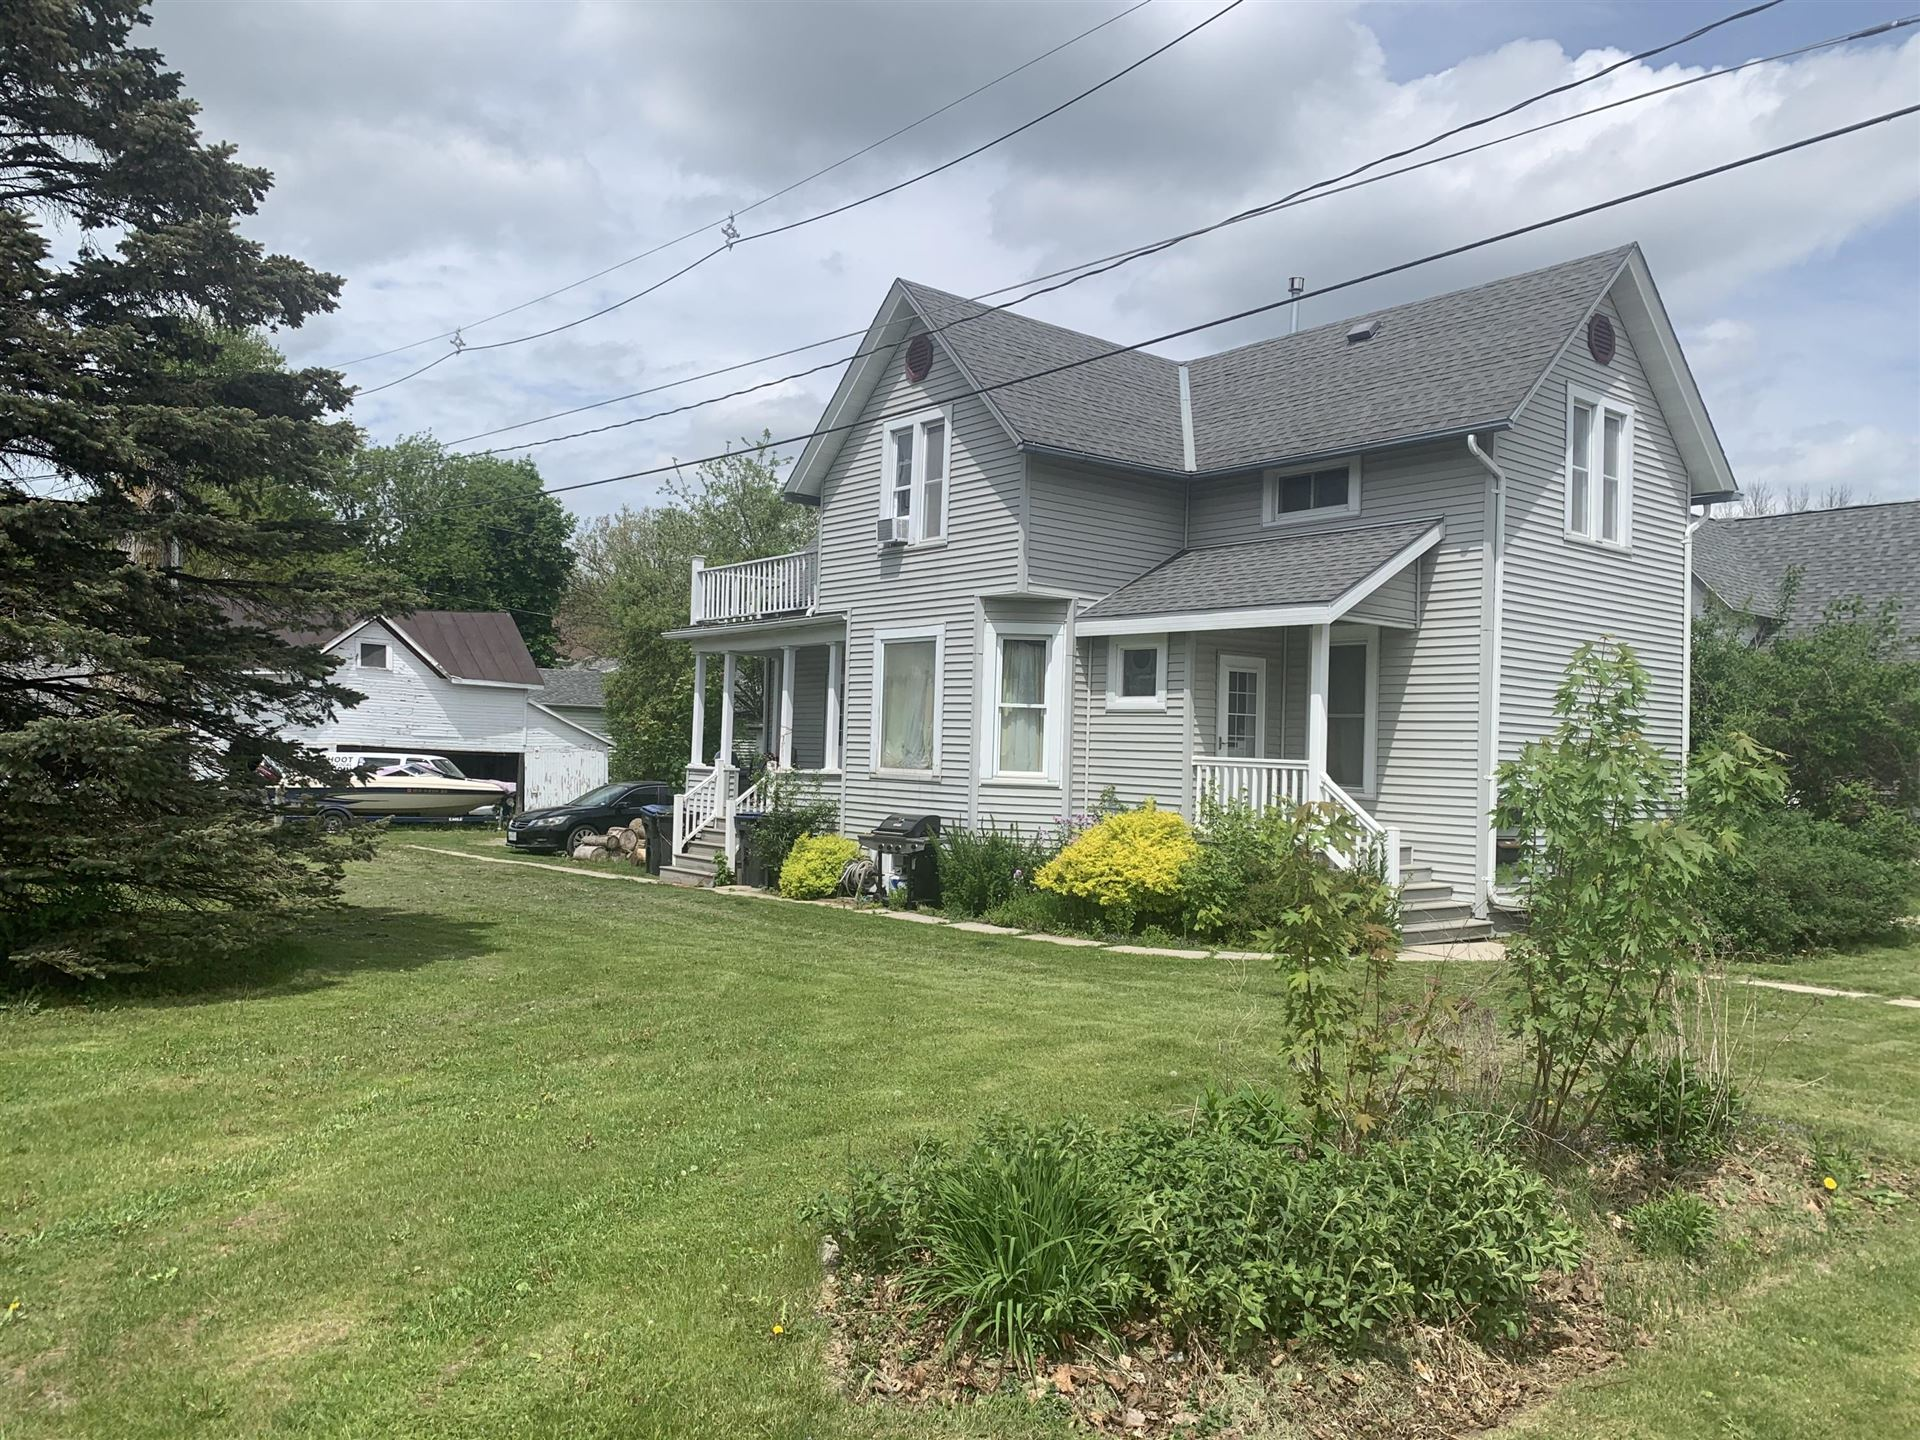 218 North St, Plymouth, WI 53073 - MLS#: 1738348